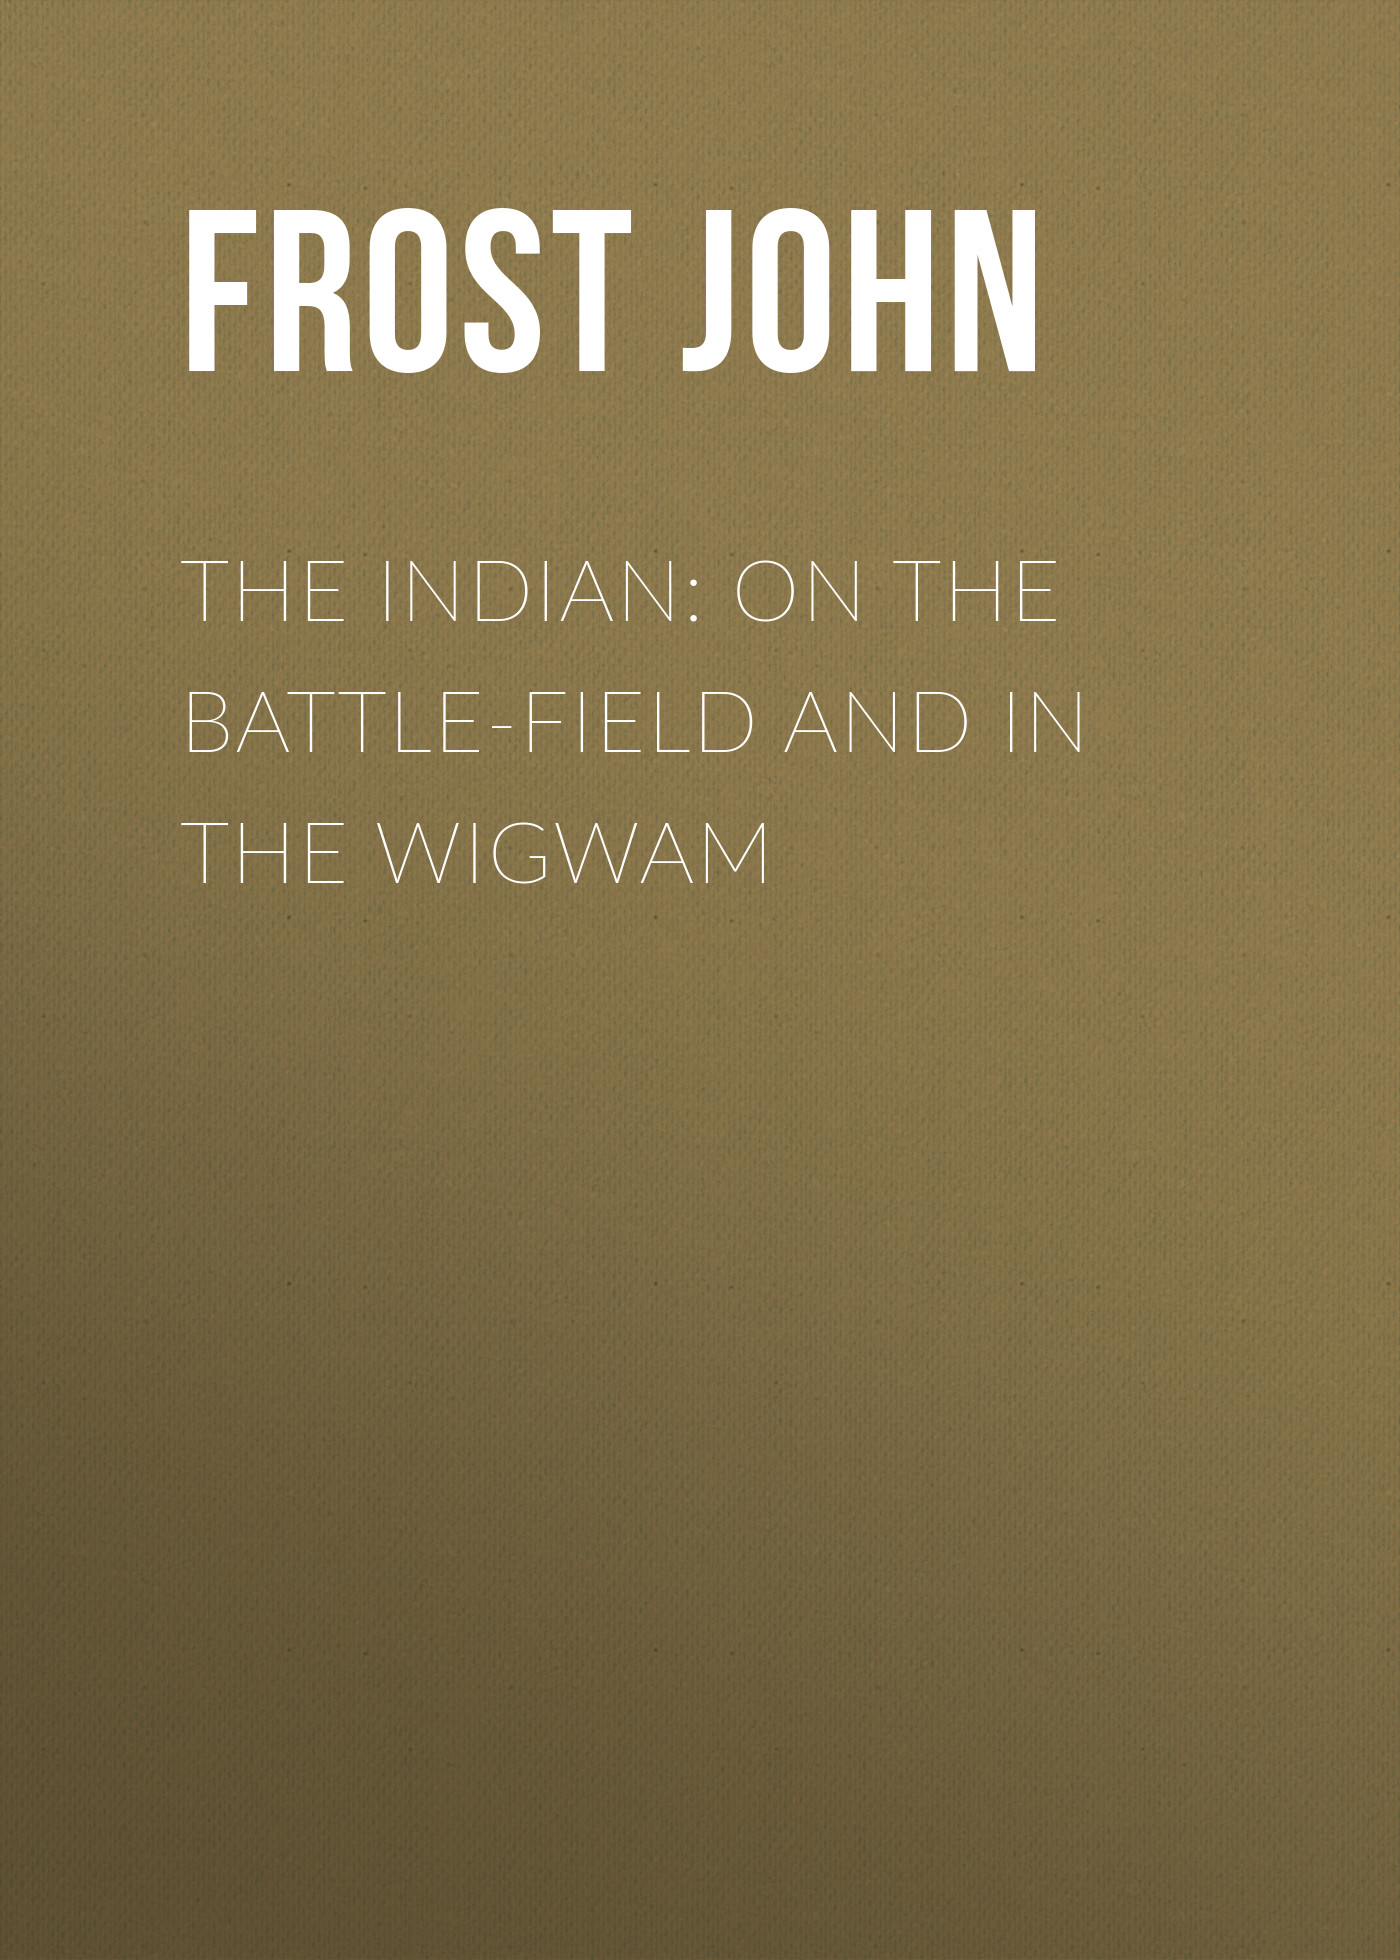 Frost John The Indian: On the Battle-Field and in the Wigwam taking on the trust – the epic battle of ida tarbell and john d rockefeller